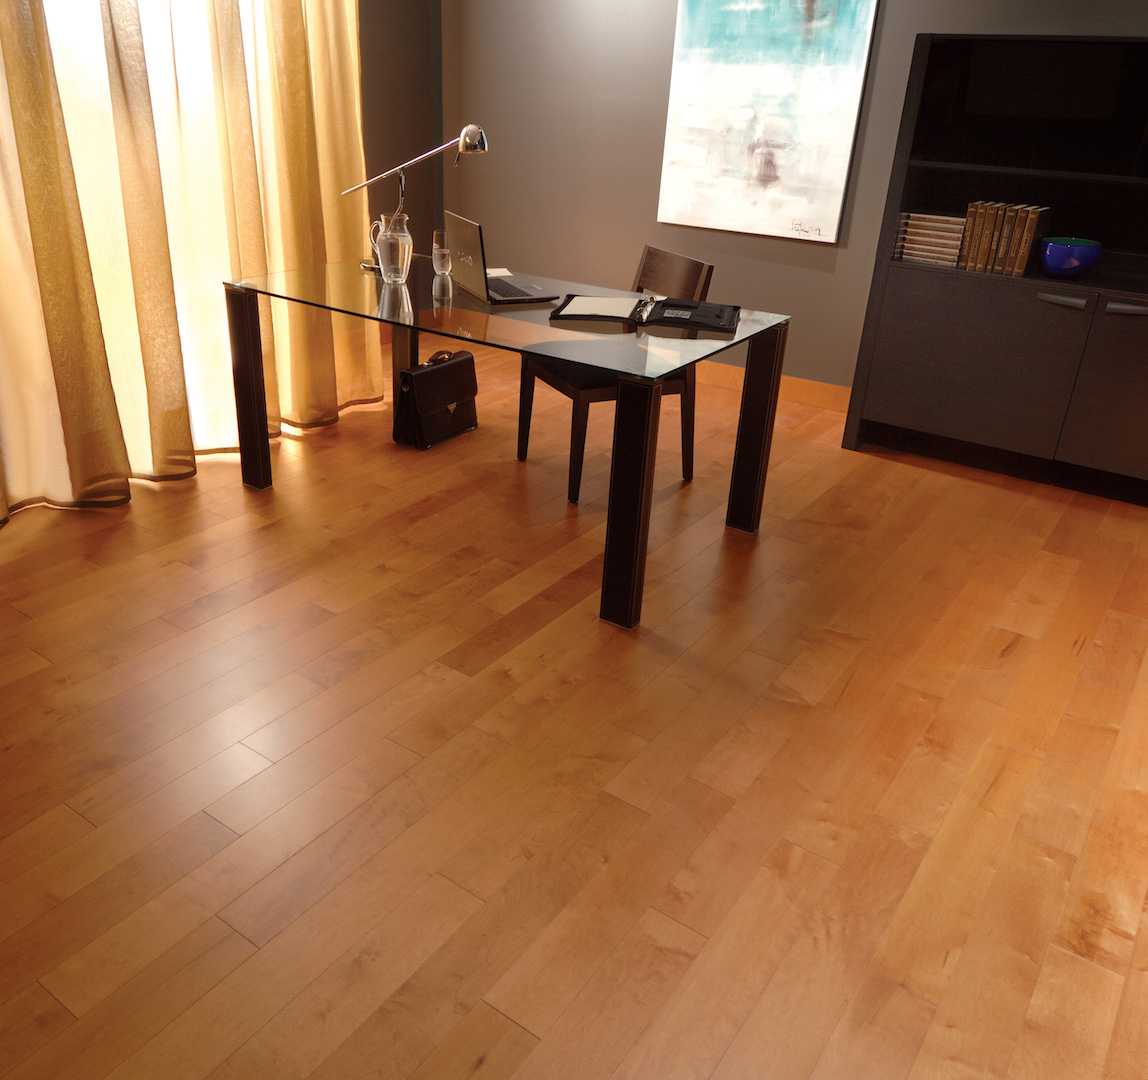 Vinyl flooring or linoleum floors tampa flooring company for Hardwood flooring company